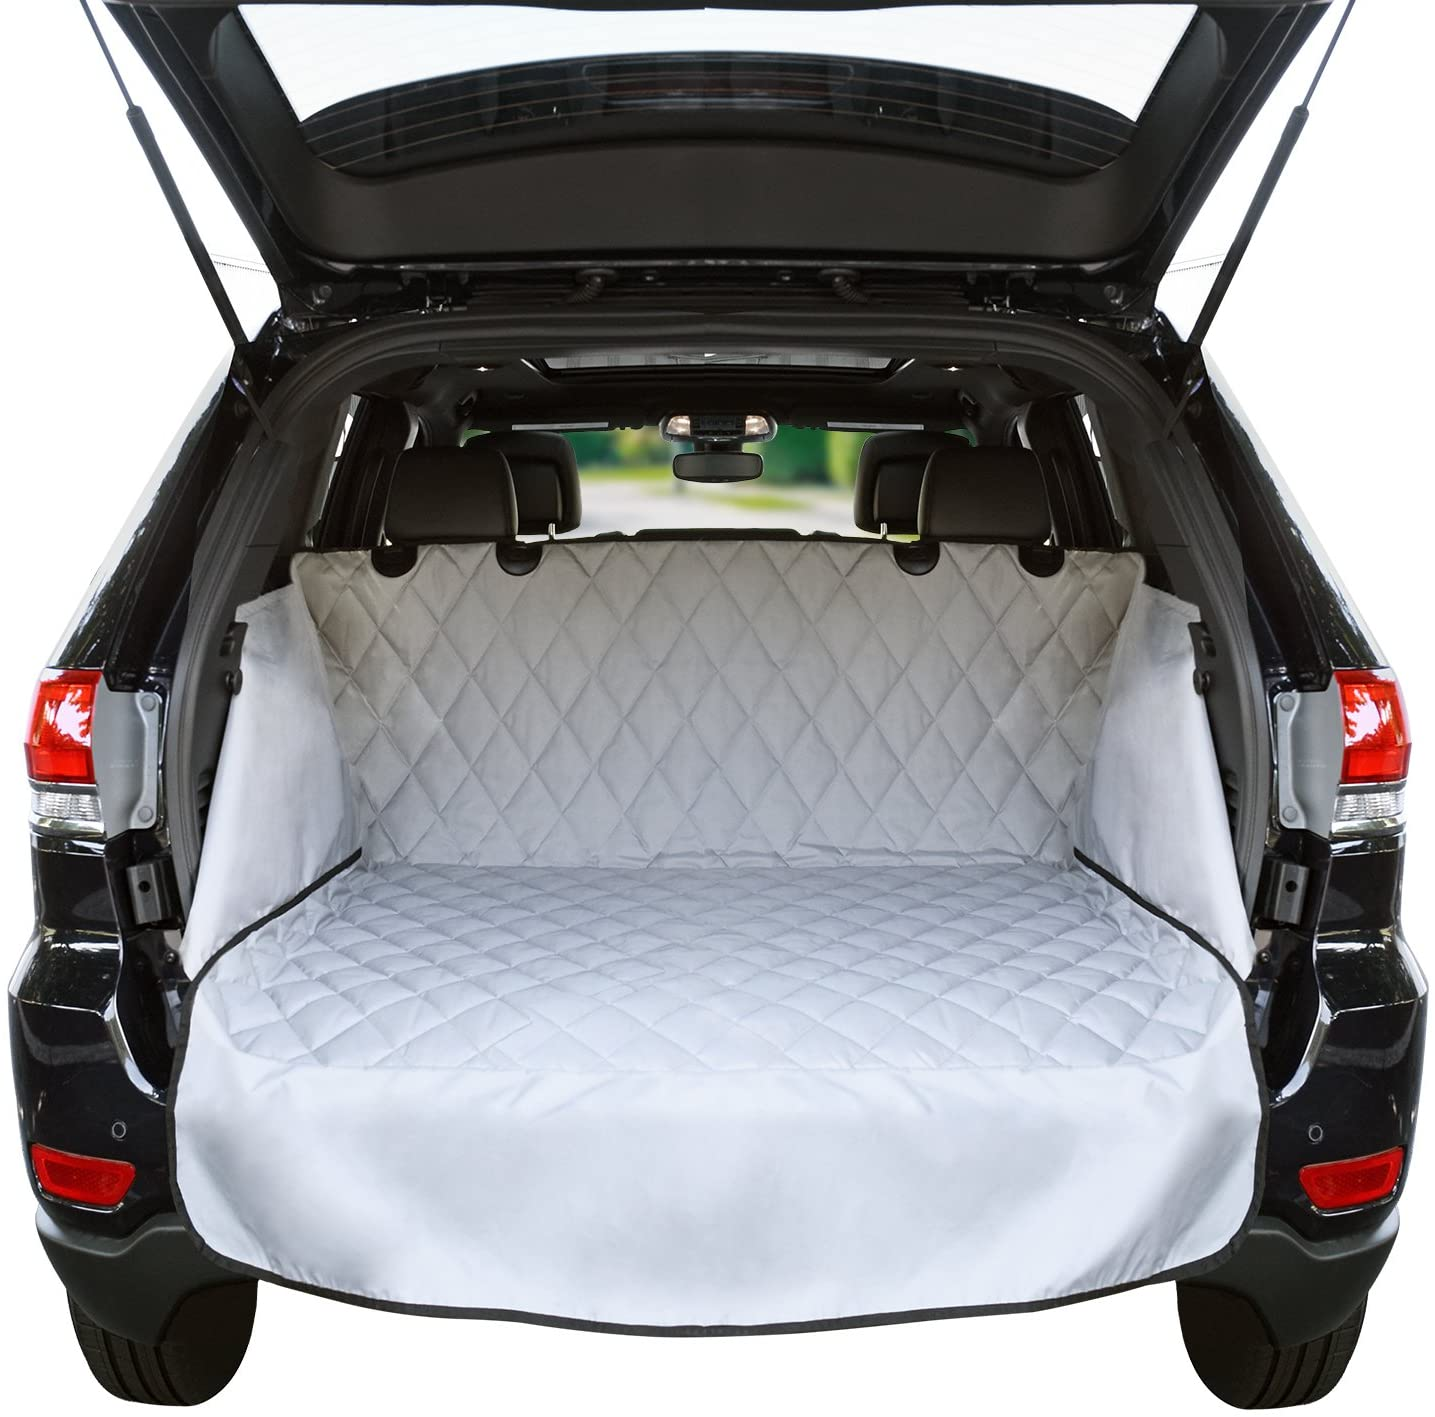 Cargo Liner For SUV s and Cars, Waterproof Material, non Slip Backing, With Side Walls Protectors, Extra Bumper Flap Protector, Large Size – Universal Fit